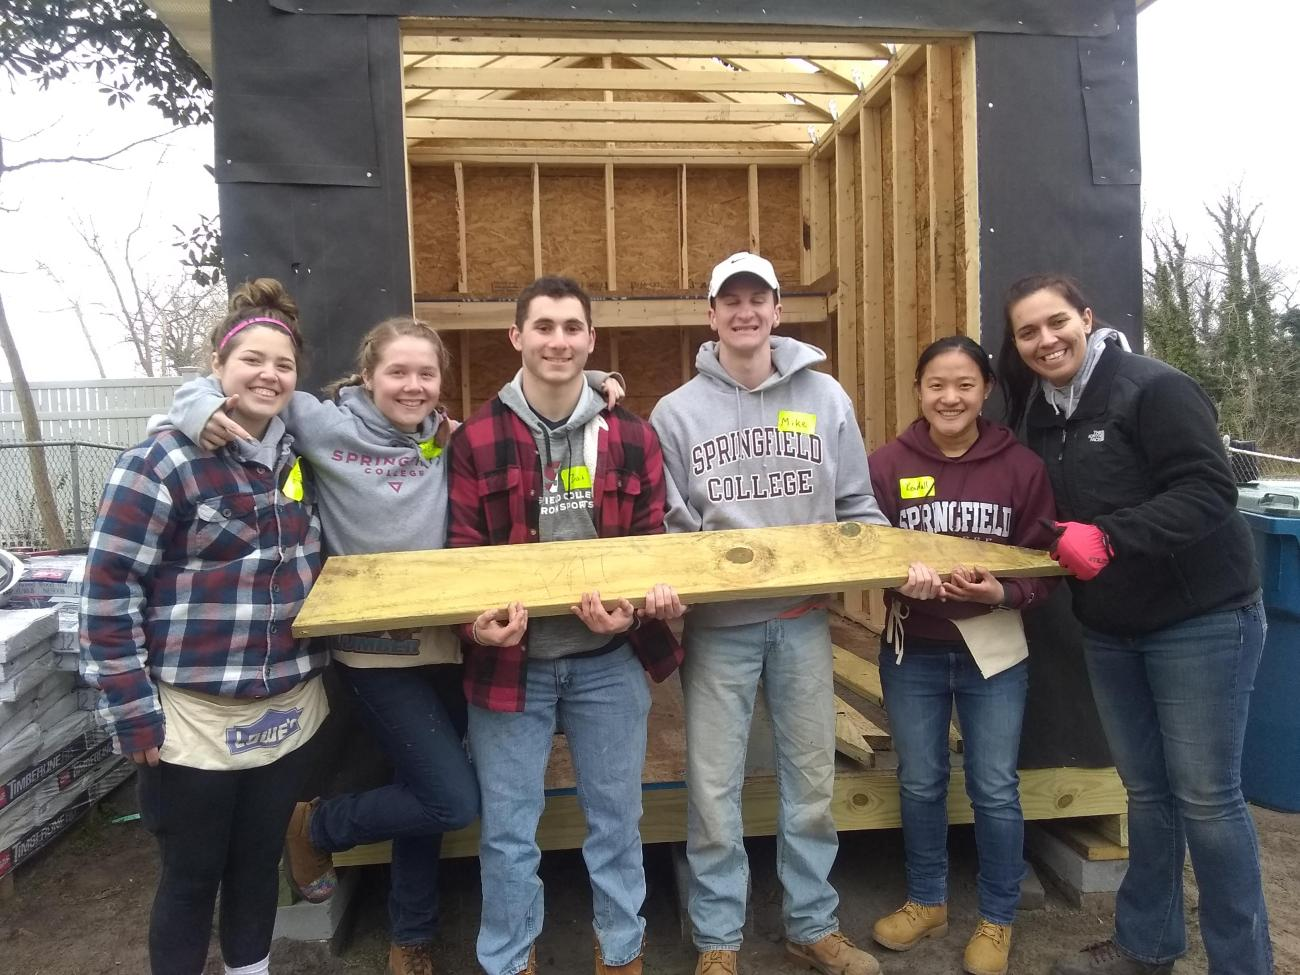 Working with Habitat for Humanity, participants will travel to Salem County, New Jersey, and spend five days working on a Collegiate Challenge build project and assist with the renovation and construction of affordable housing options for low-income families.